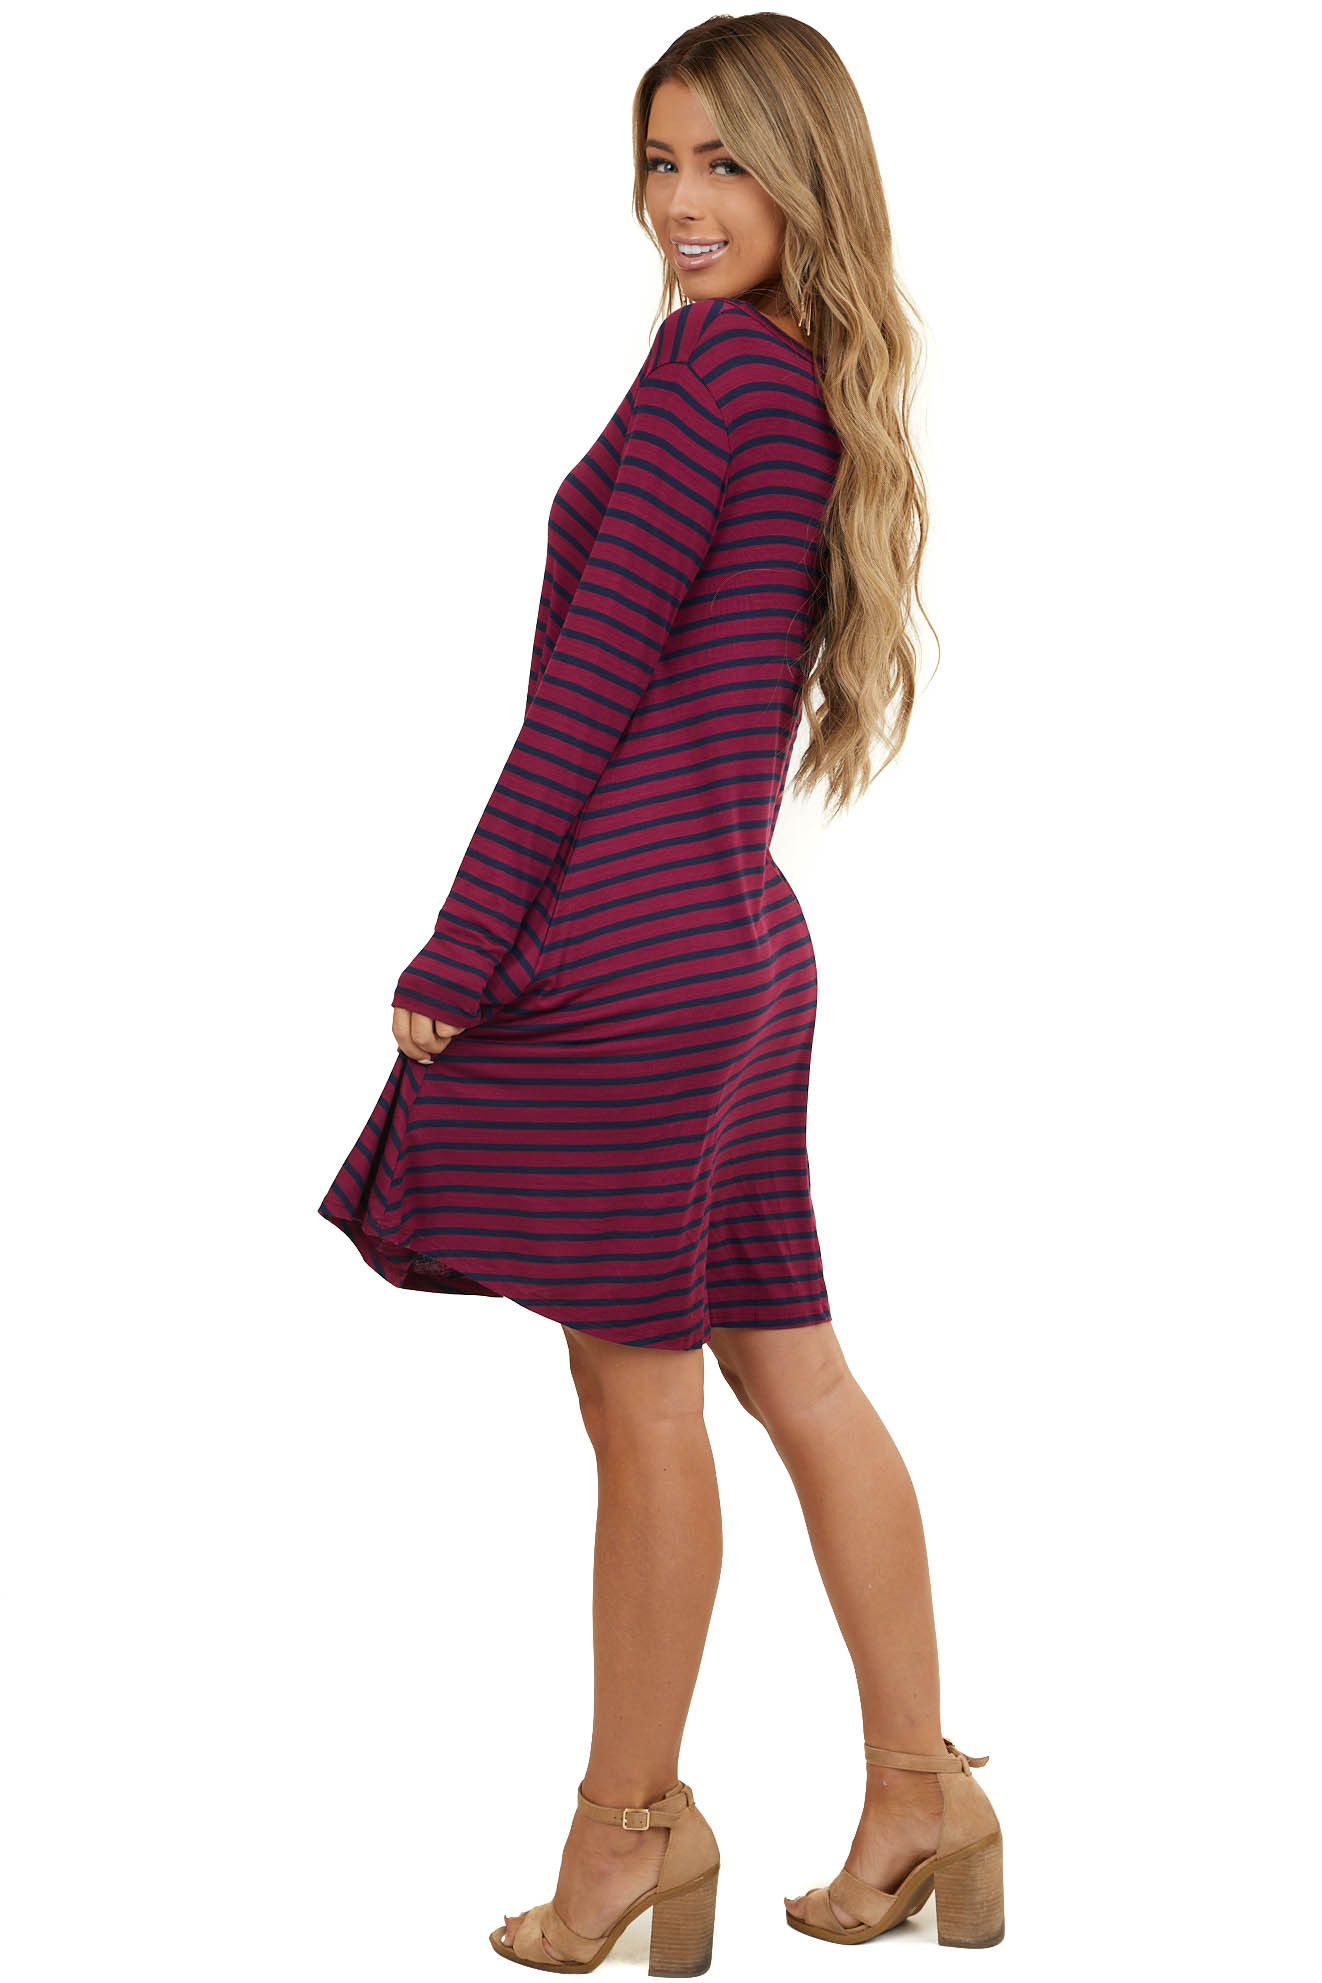 Wine Red and Navy Striped Knit Dress with Long Sleeves